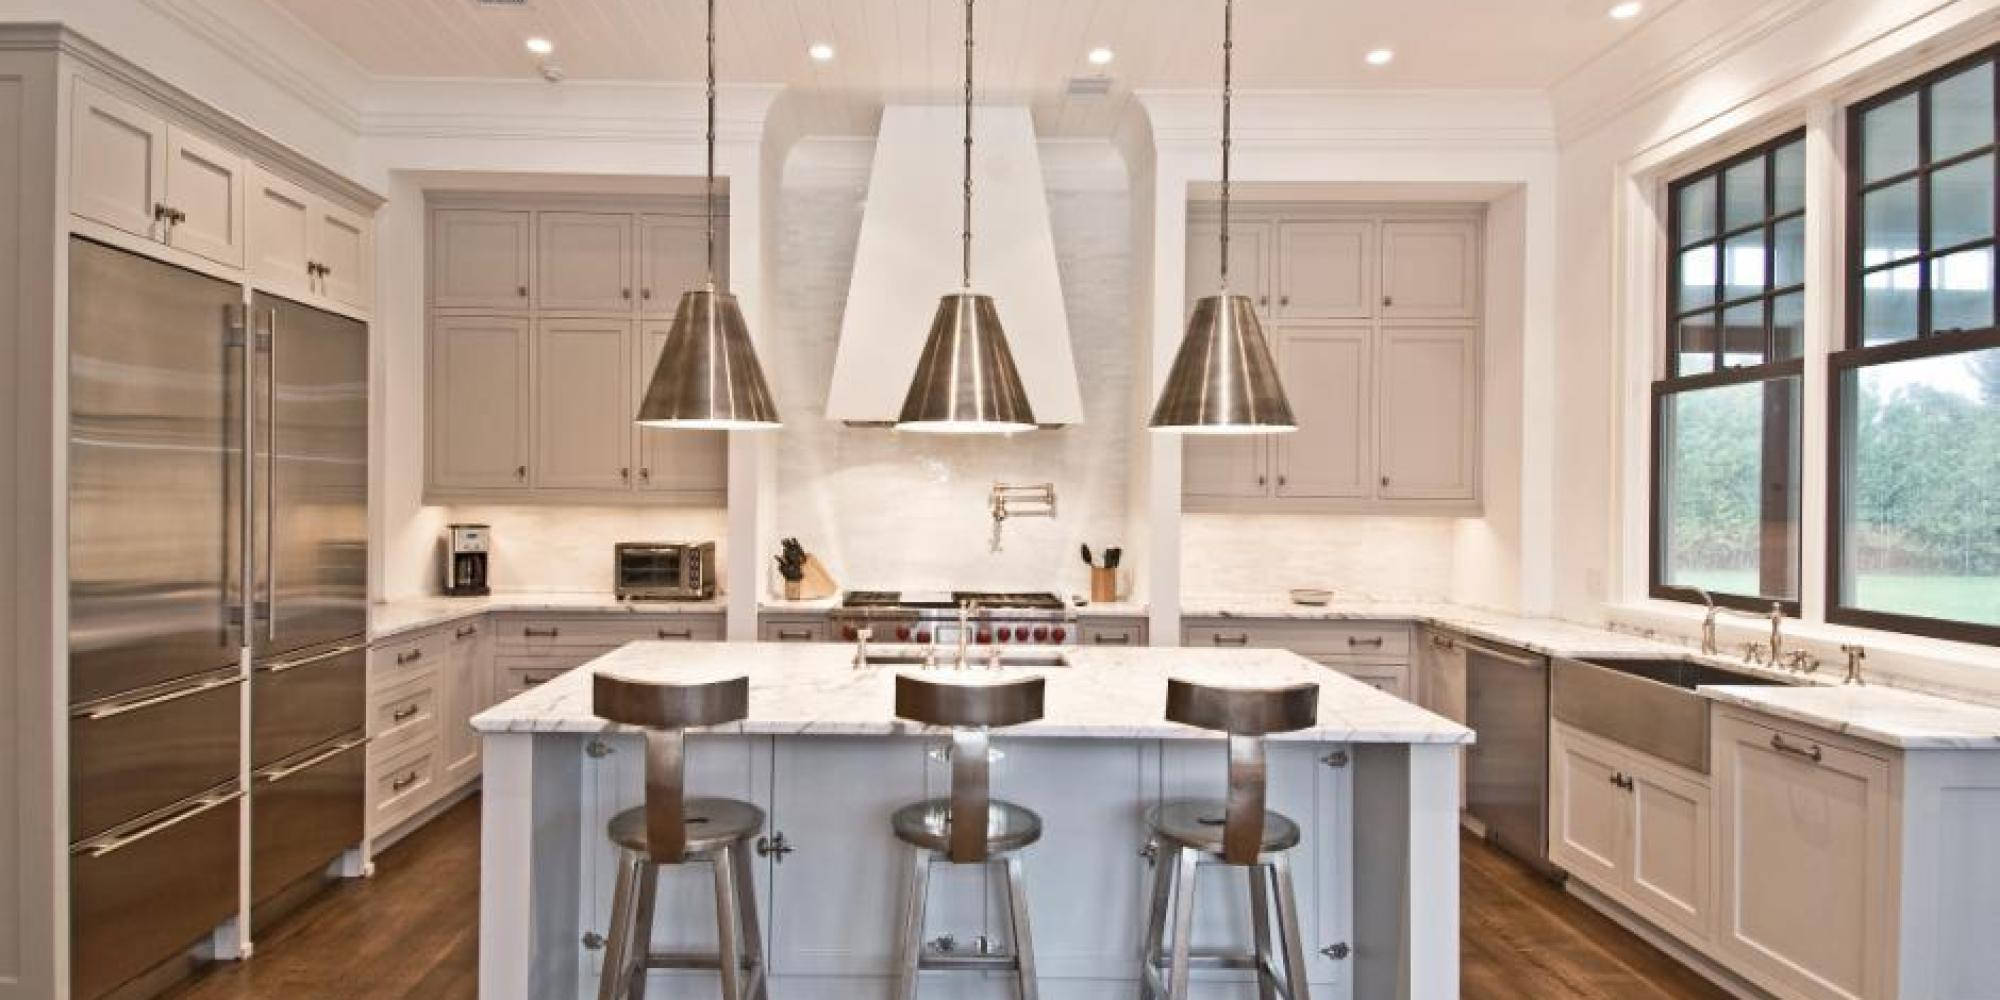 For Kitchens The Best Paint Colors For Every Type Of Kitchen Huffpost